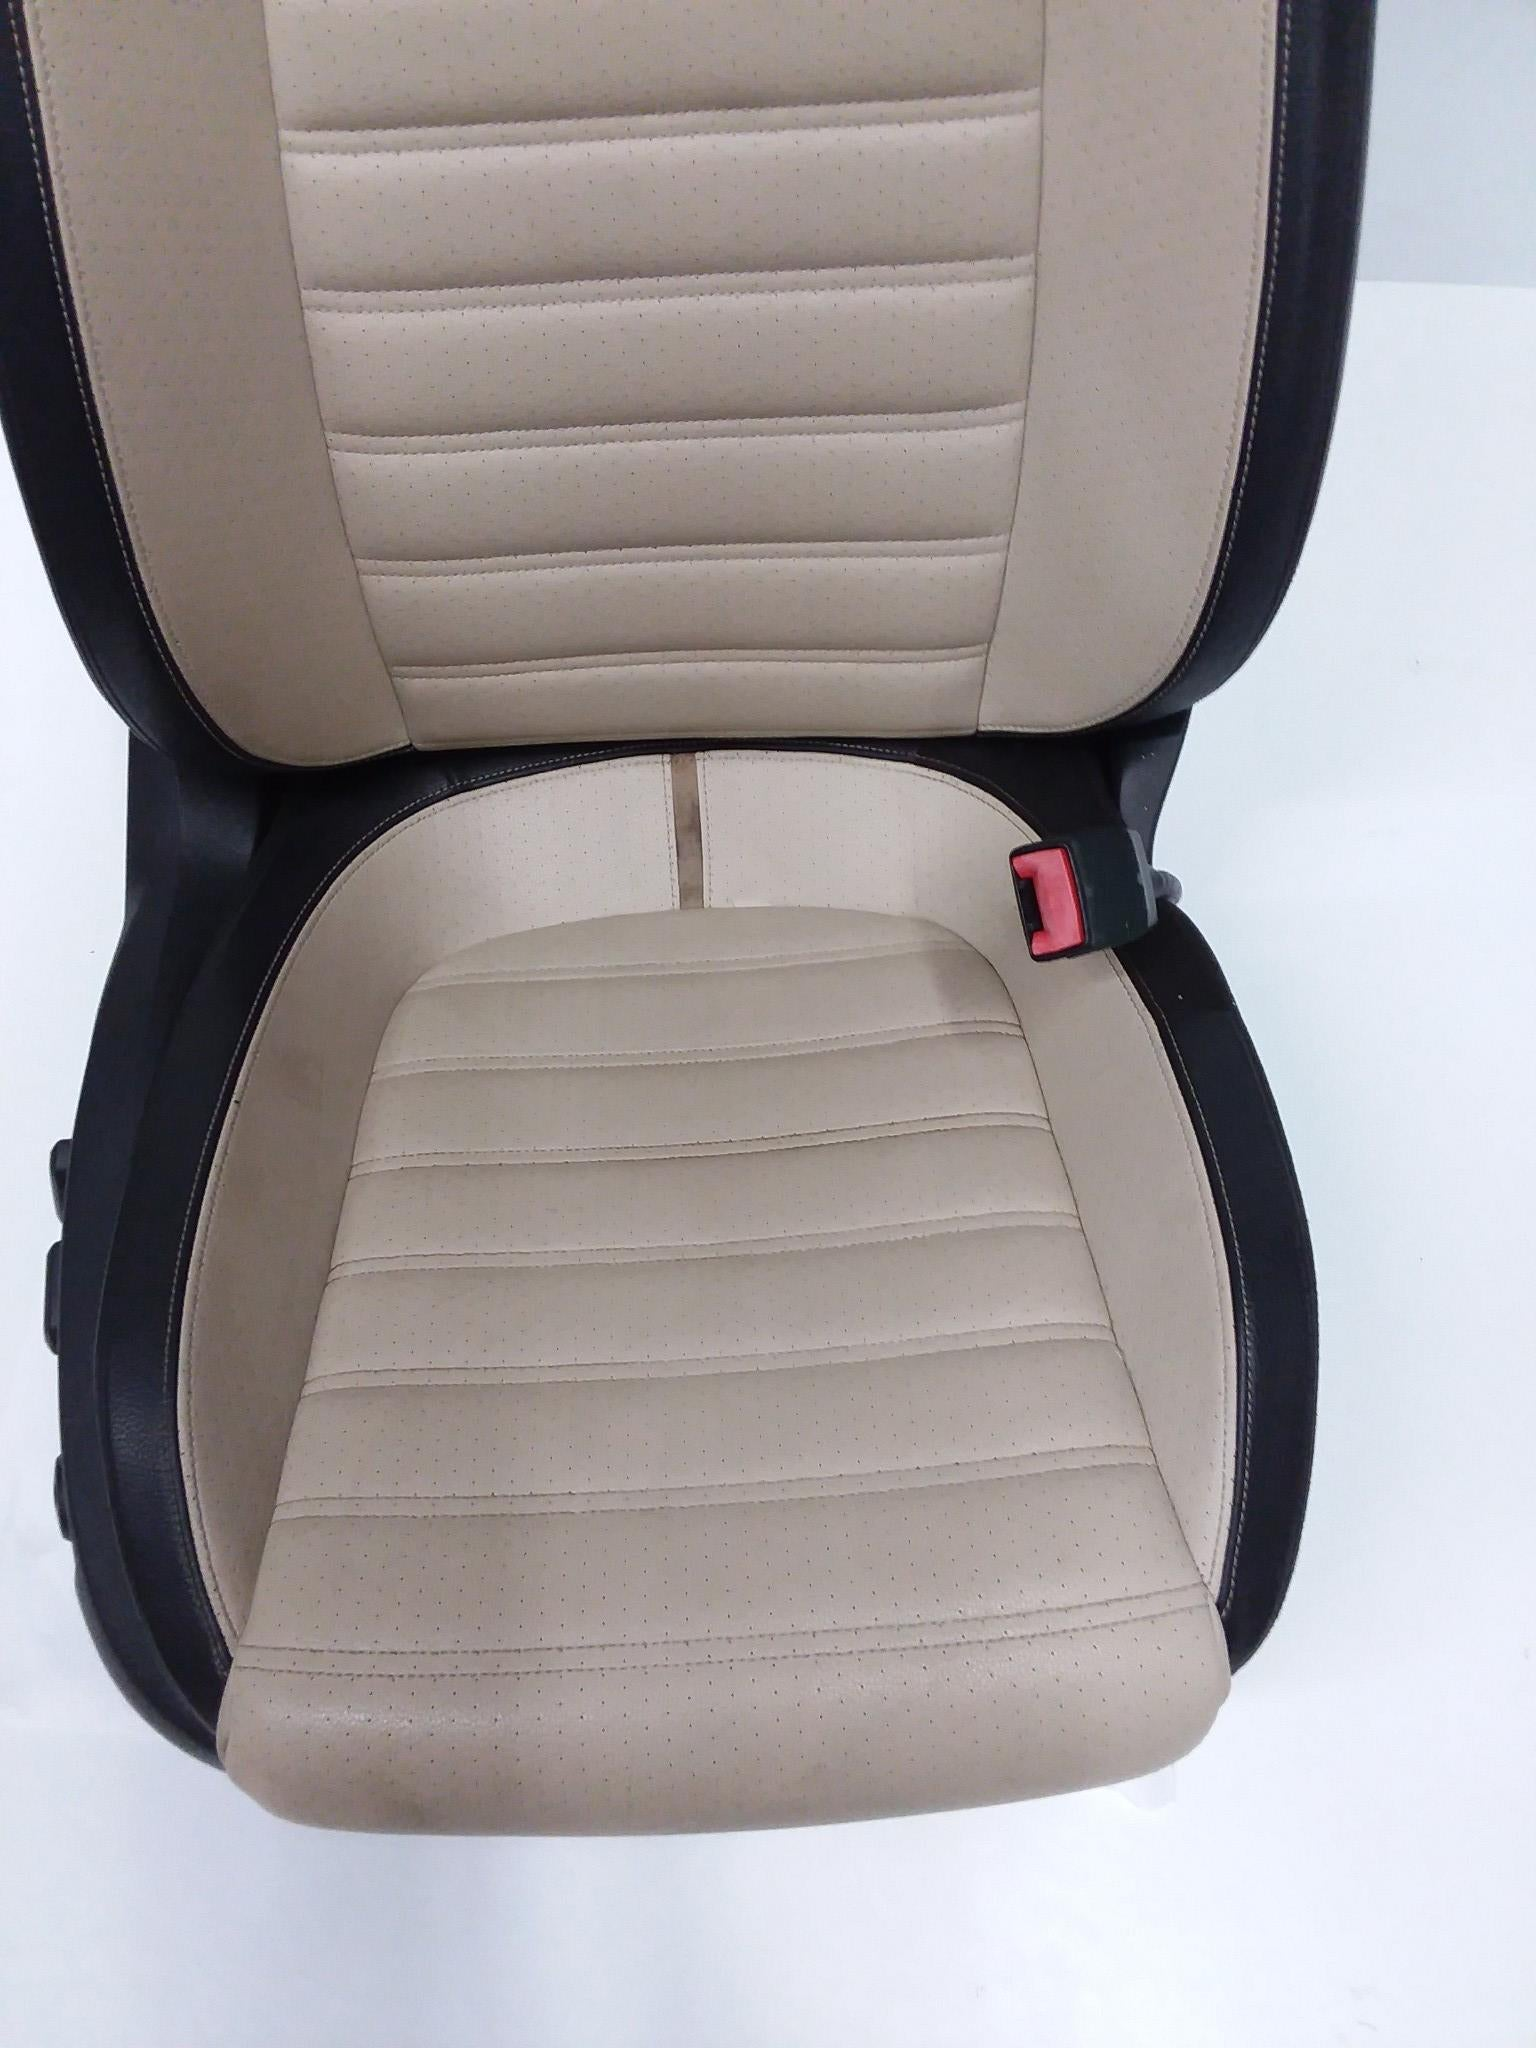 VOLKSWAGEN CC FRONT PASSENGER SIDE POWER BUCKET SEAT LEATHER 2009 2010 2011 OEM